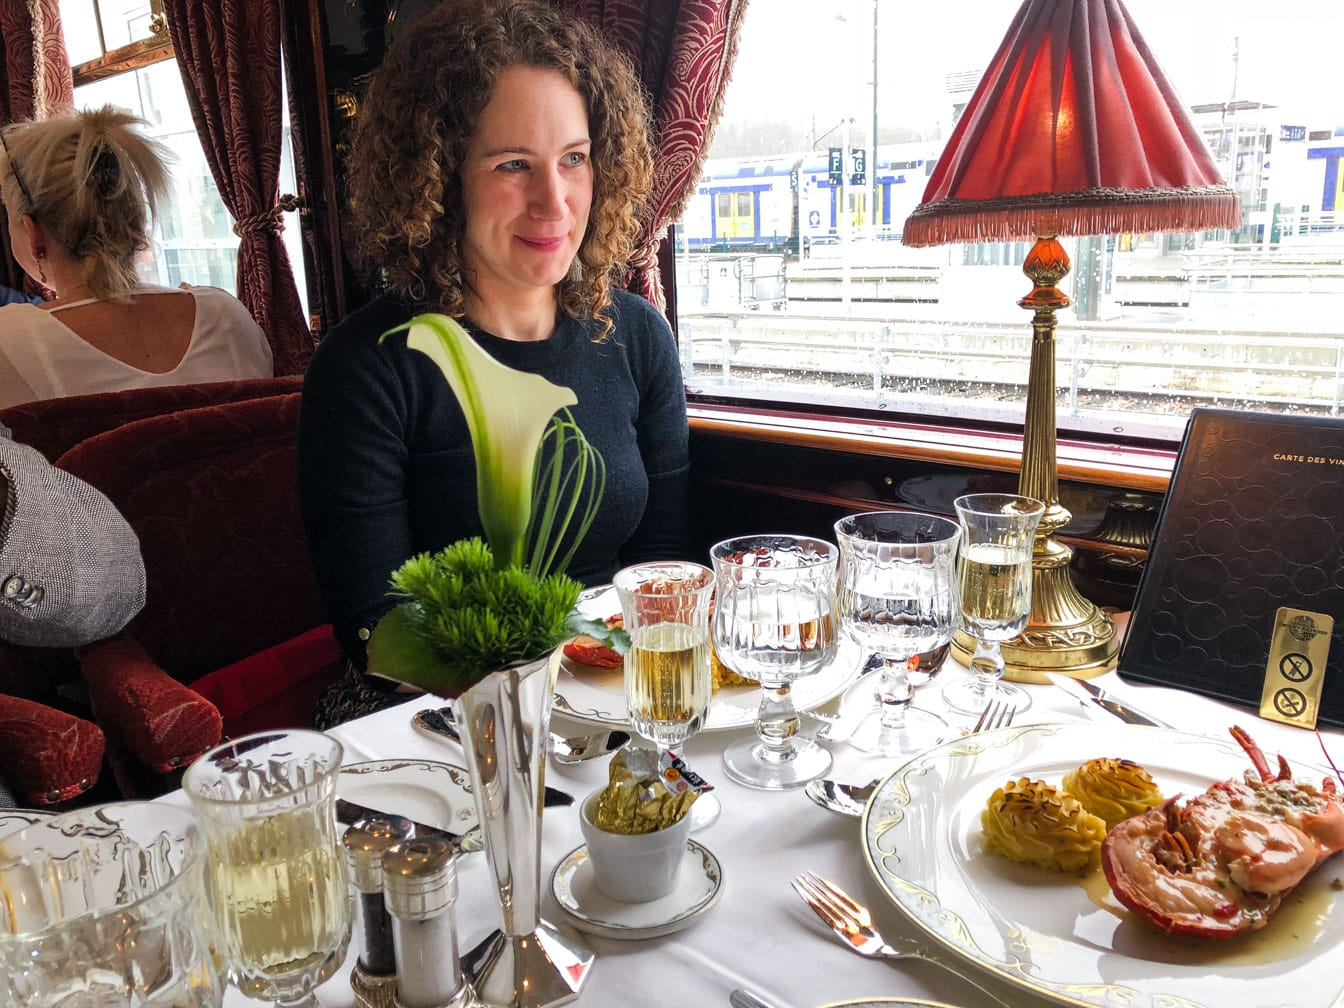 Lucy eating lunch on the Venice Simplon-Orient-Express (VSOE) train